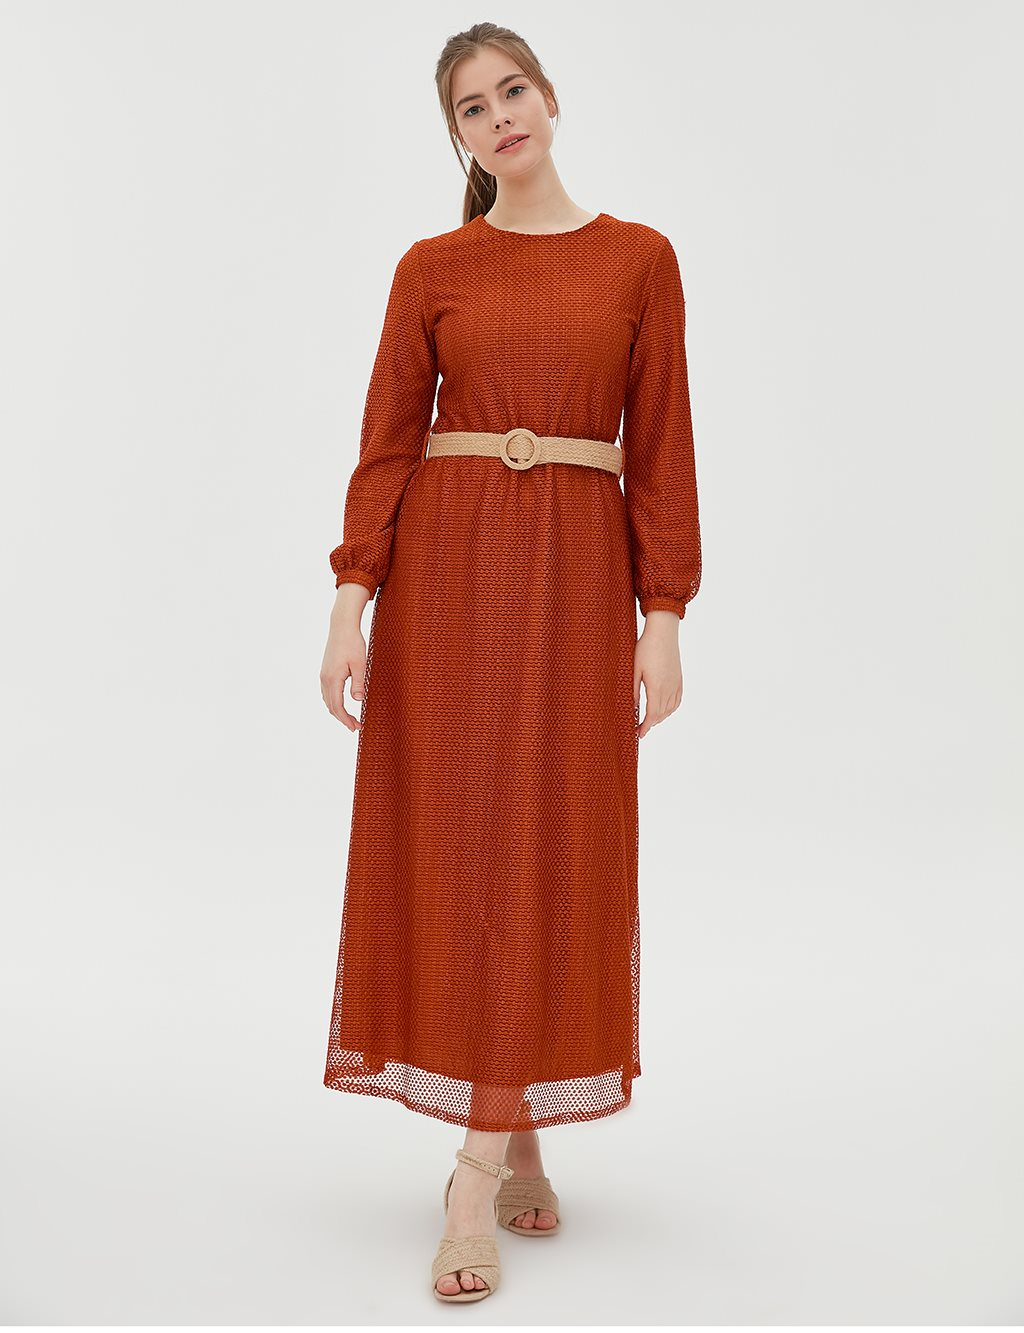 KYR Net Dress With Belt B20 83006 Tile